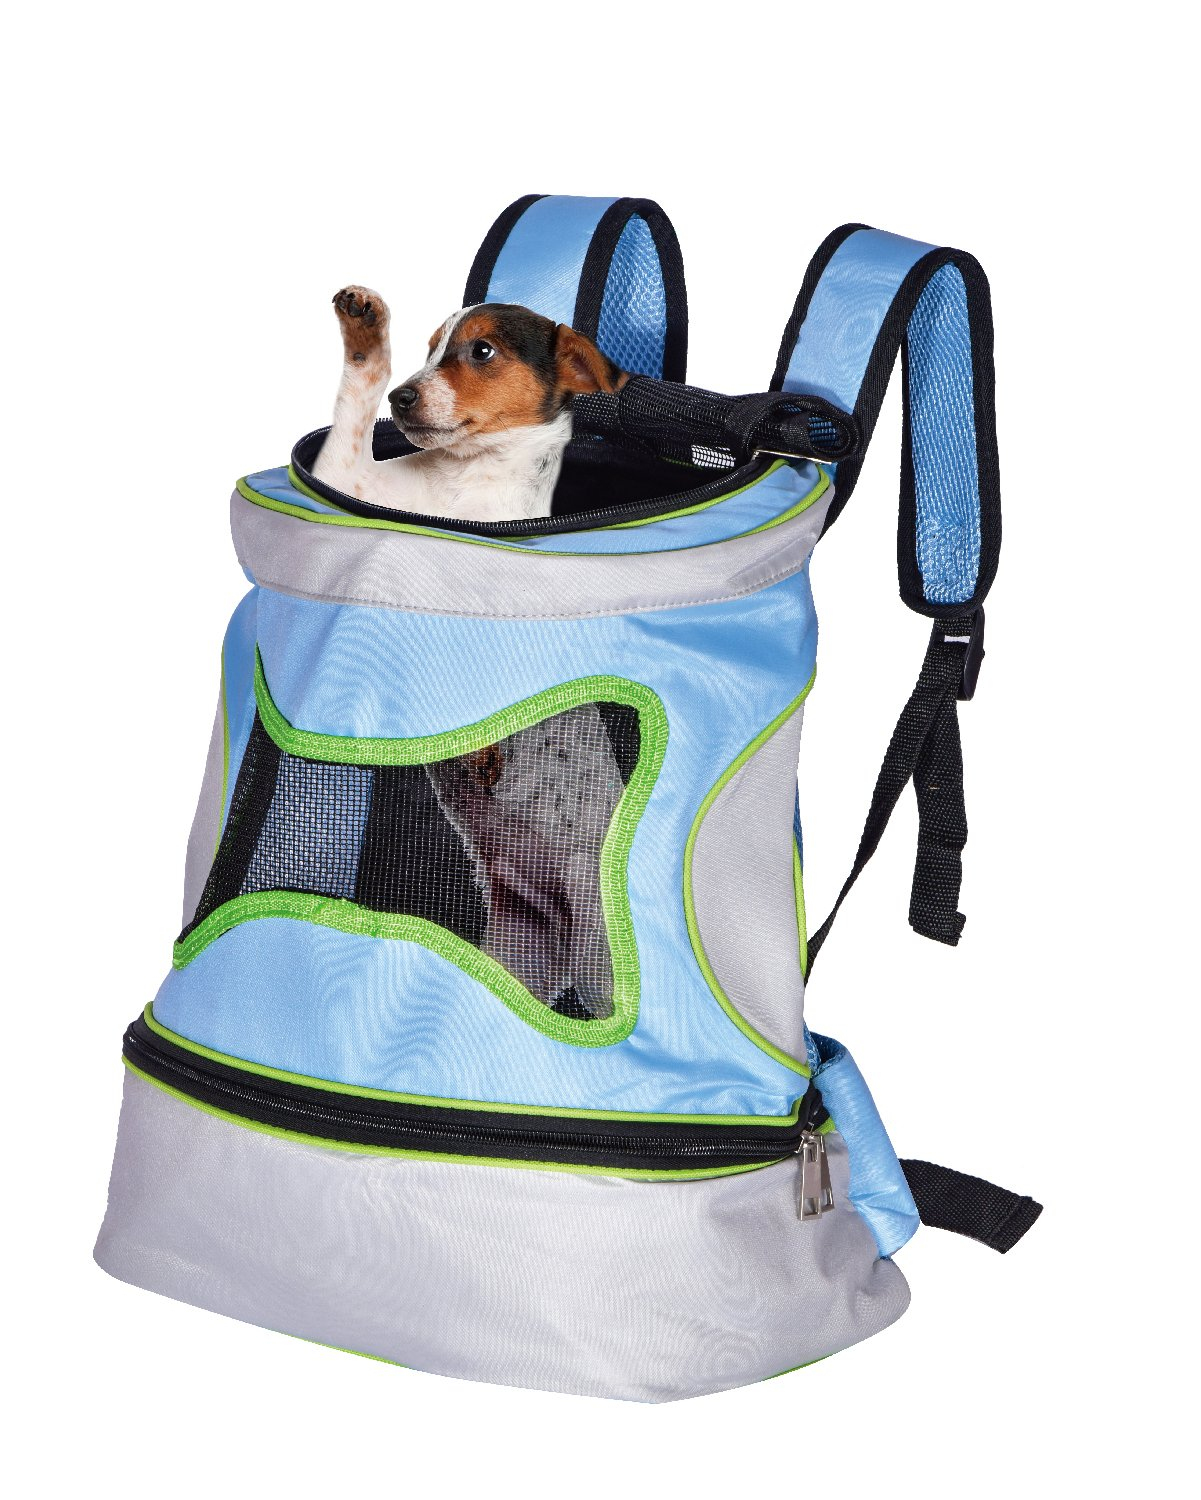 Comfortable Dogs Cats Small Animals Carriers Backpack for Walking Biking Hiking Traveling,Blue